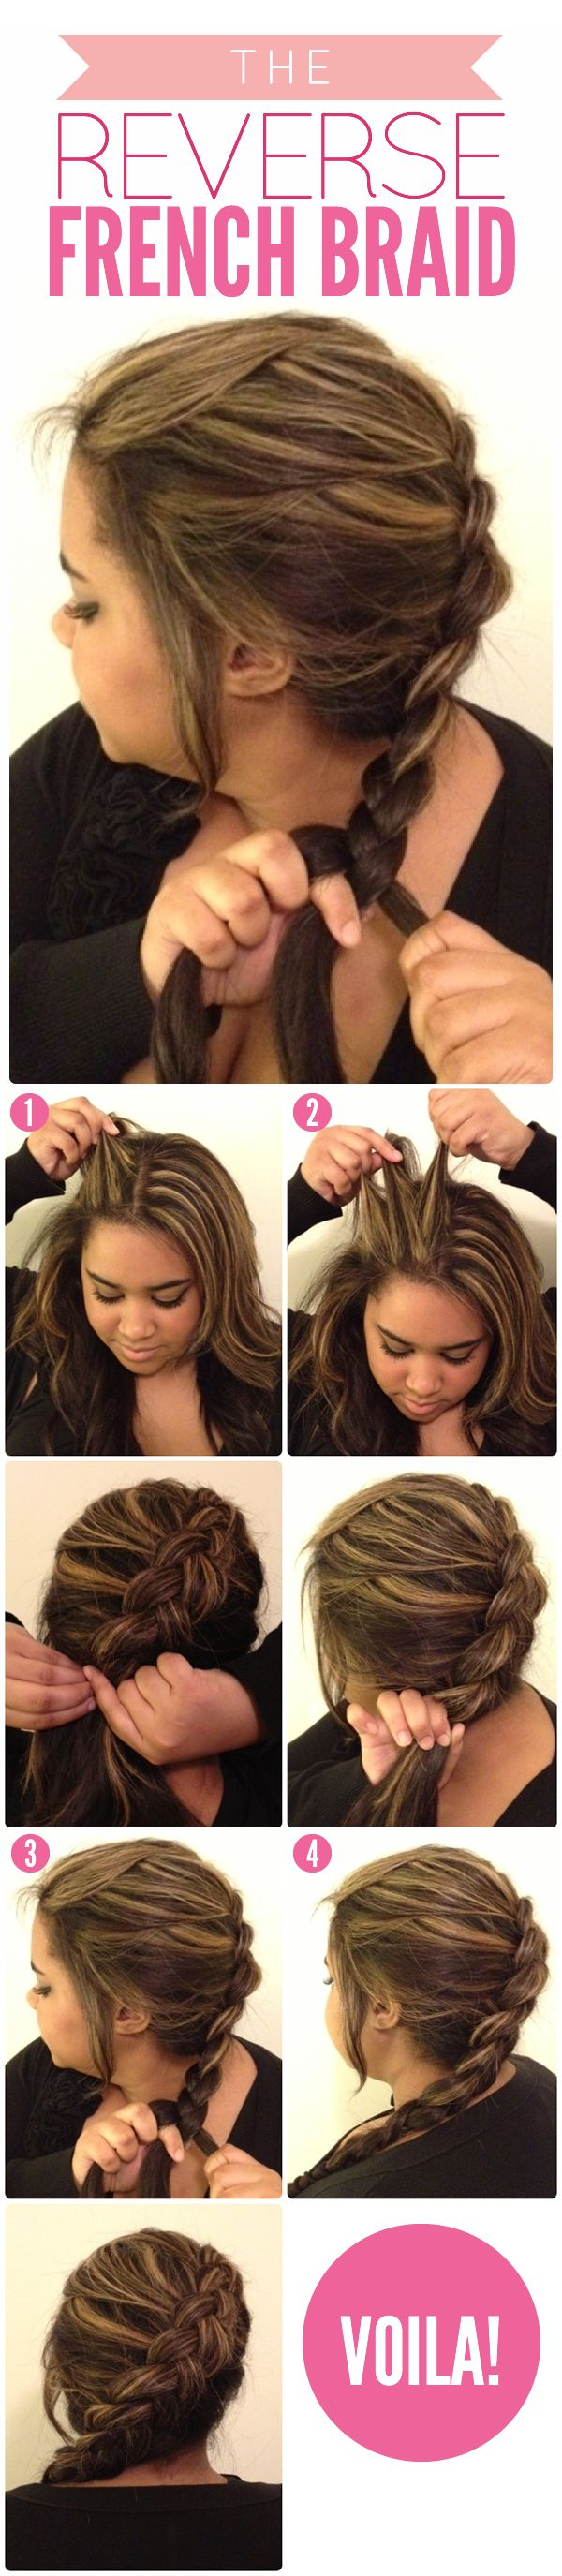 Miraculous 1000 Ideas About Reverse French Braids On Pinterest French Short Hairstyles Gunalazisus